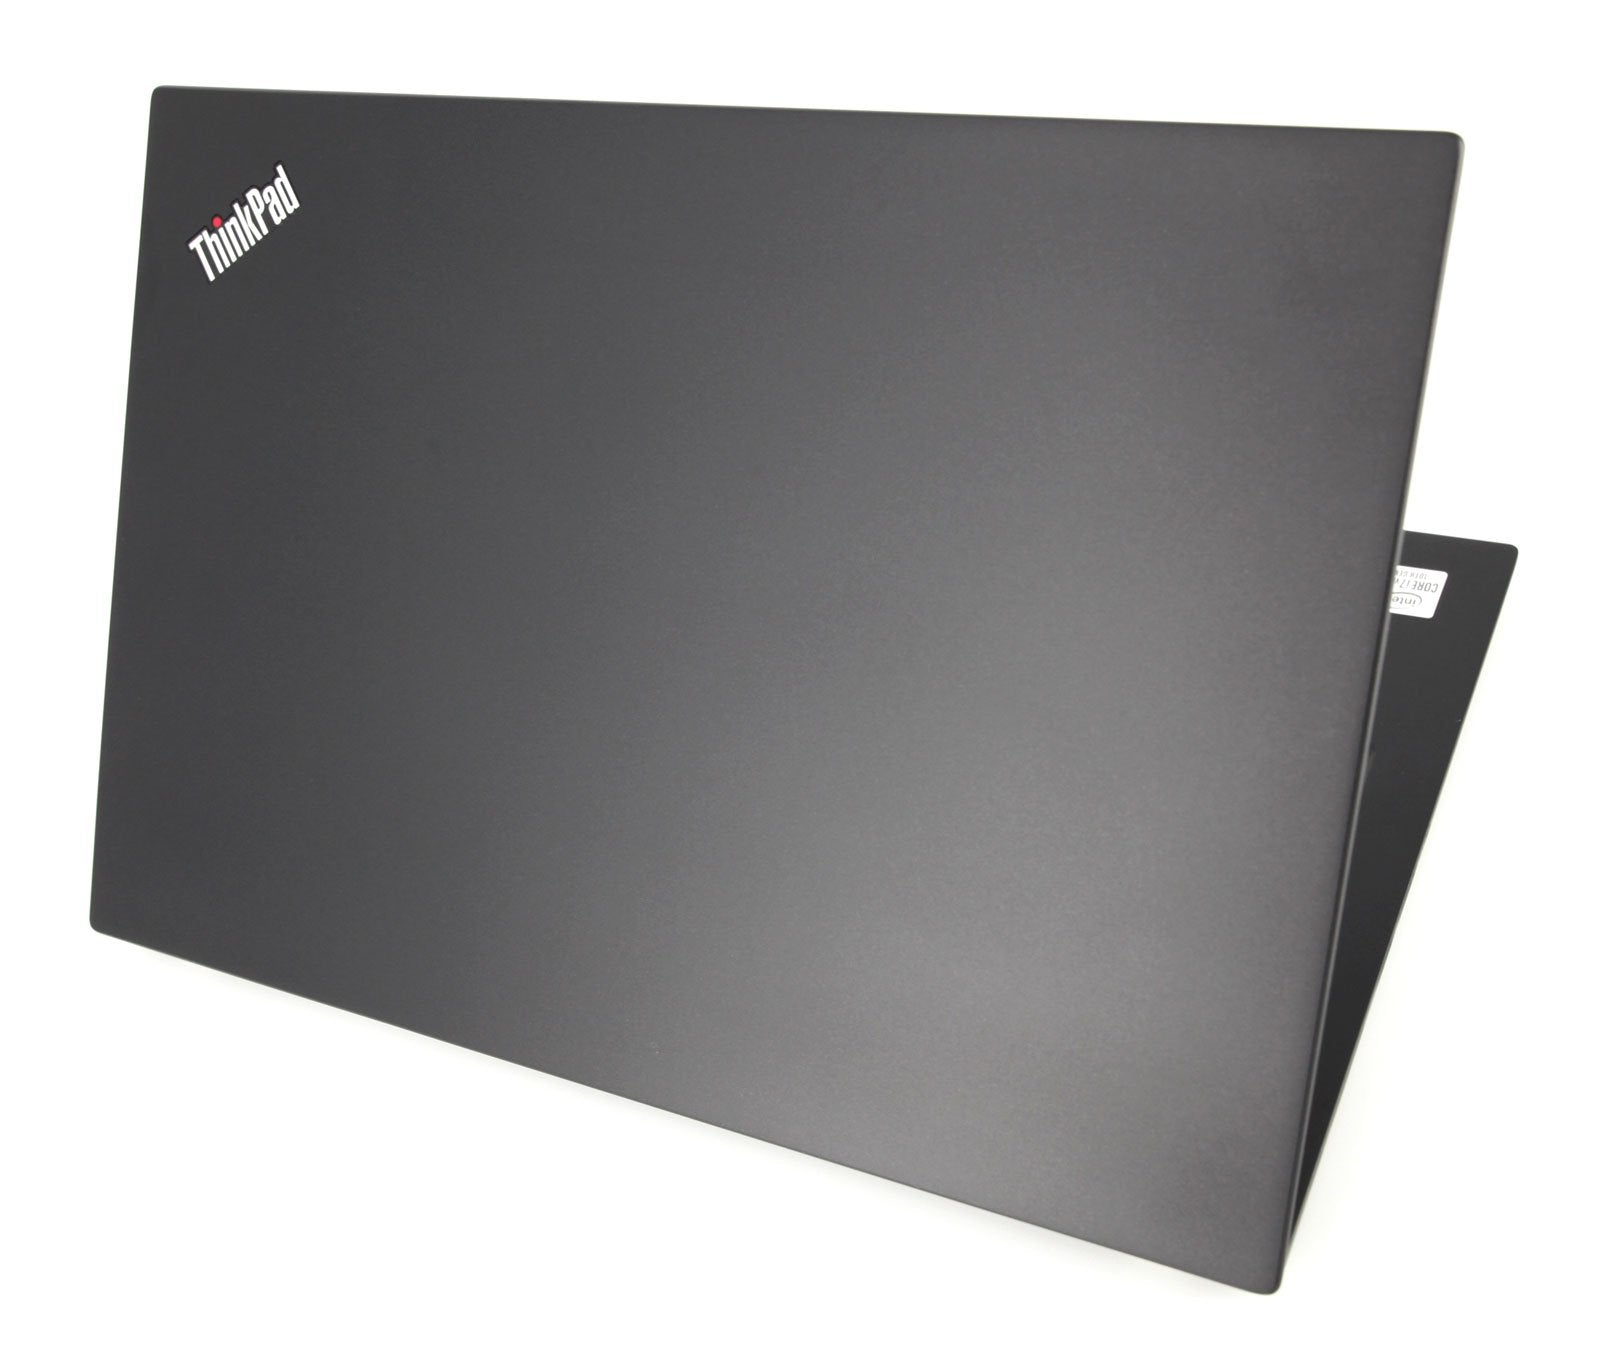 Lenovo Thinkpad T14s Gen 1 Laptop: Core i7-10610U, 256GB 16GB RAM Warranty - CruiseTech